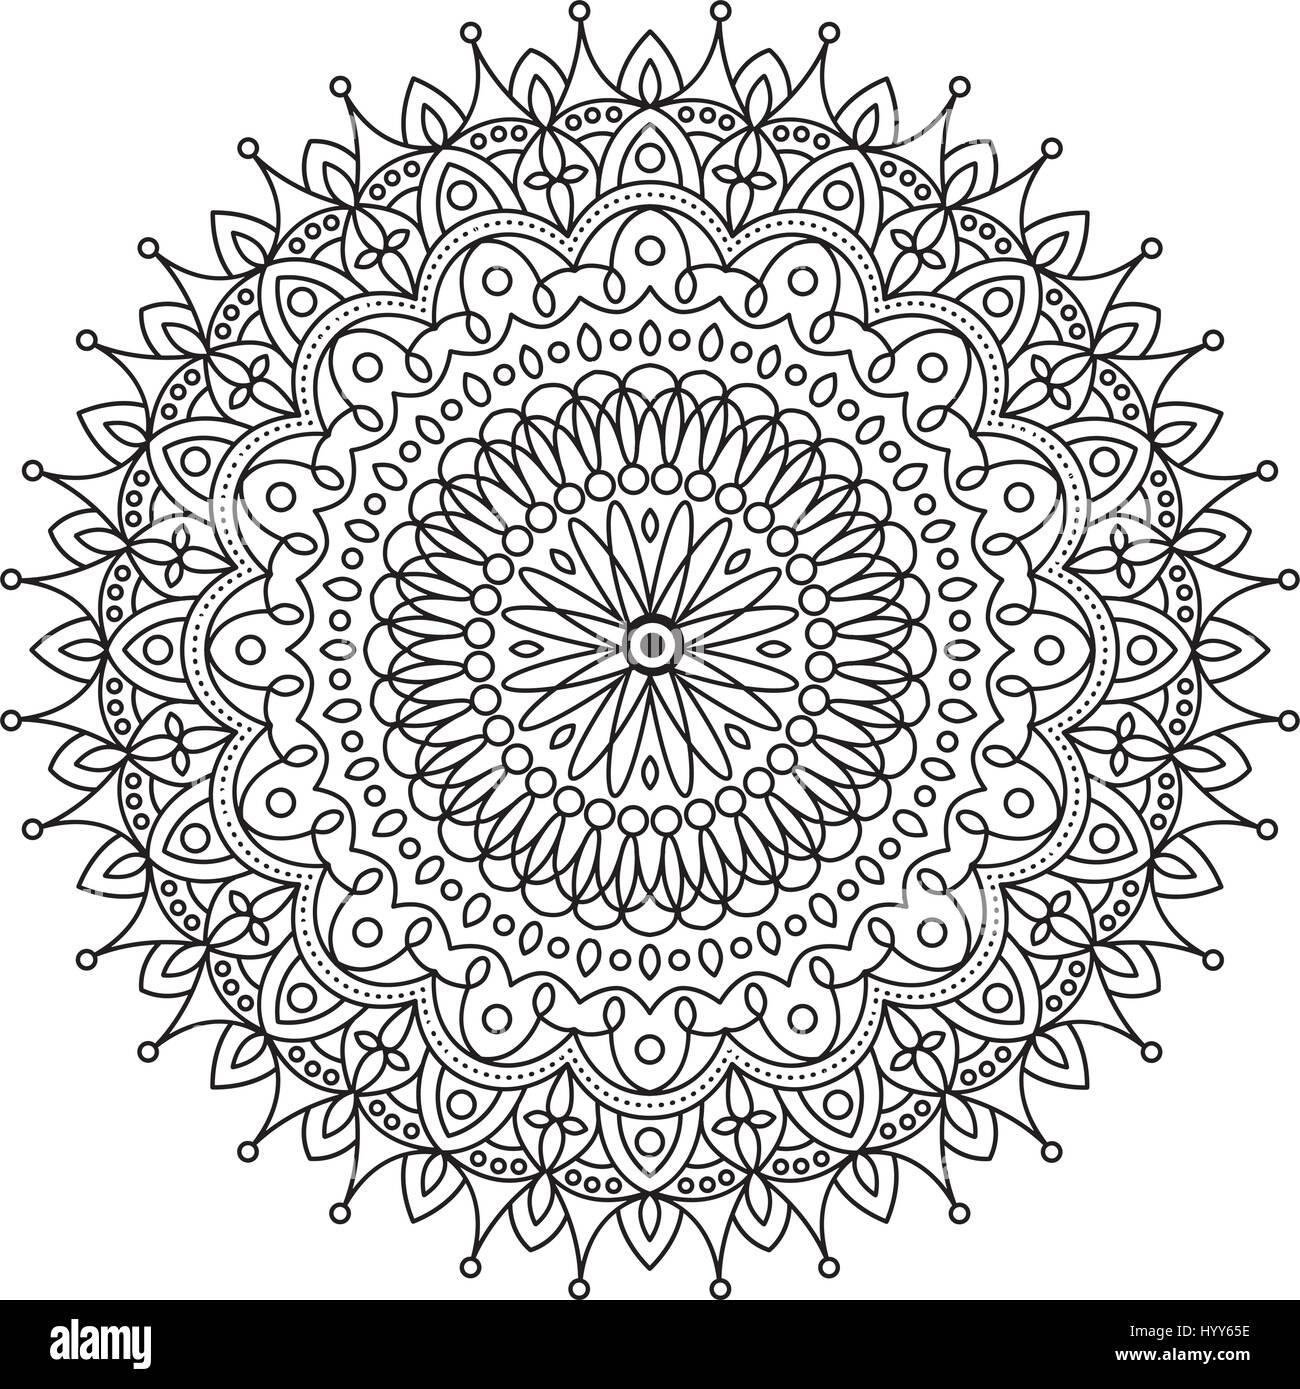 coloring book mandala circle lace ornament round ornamental